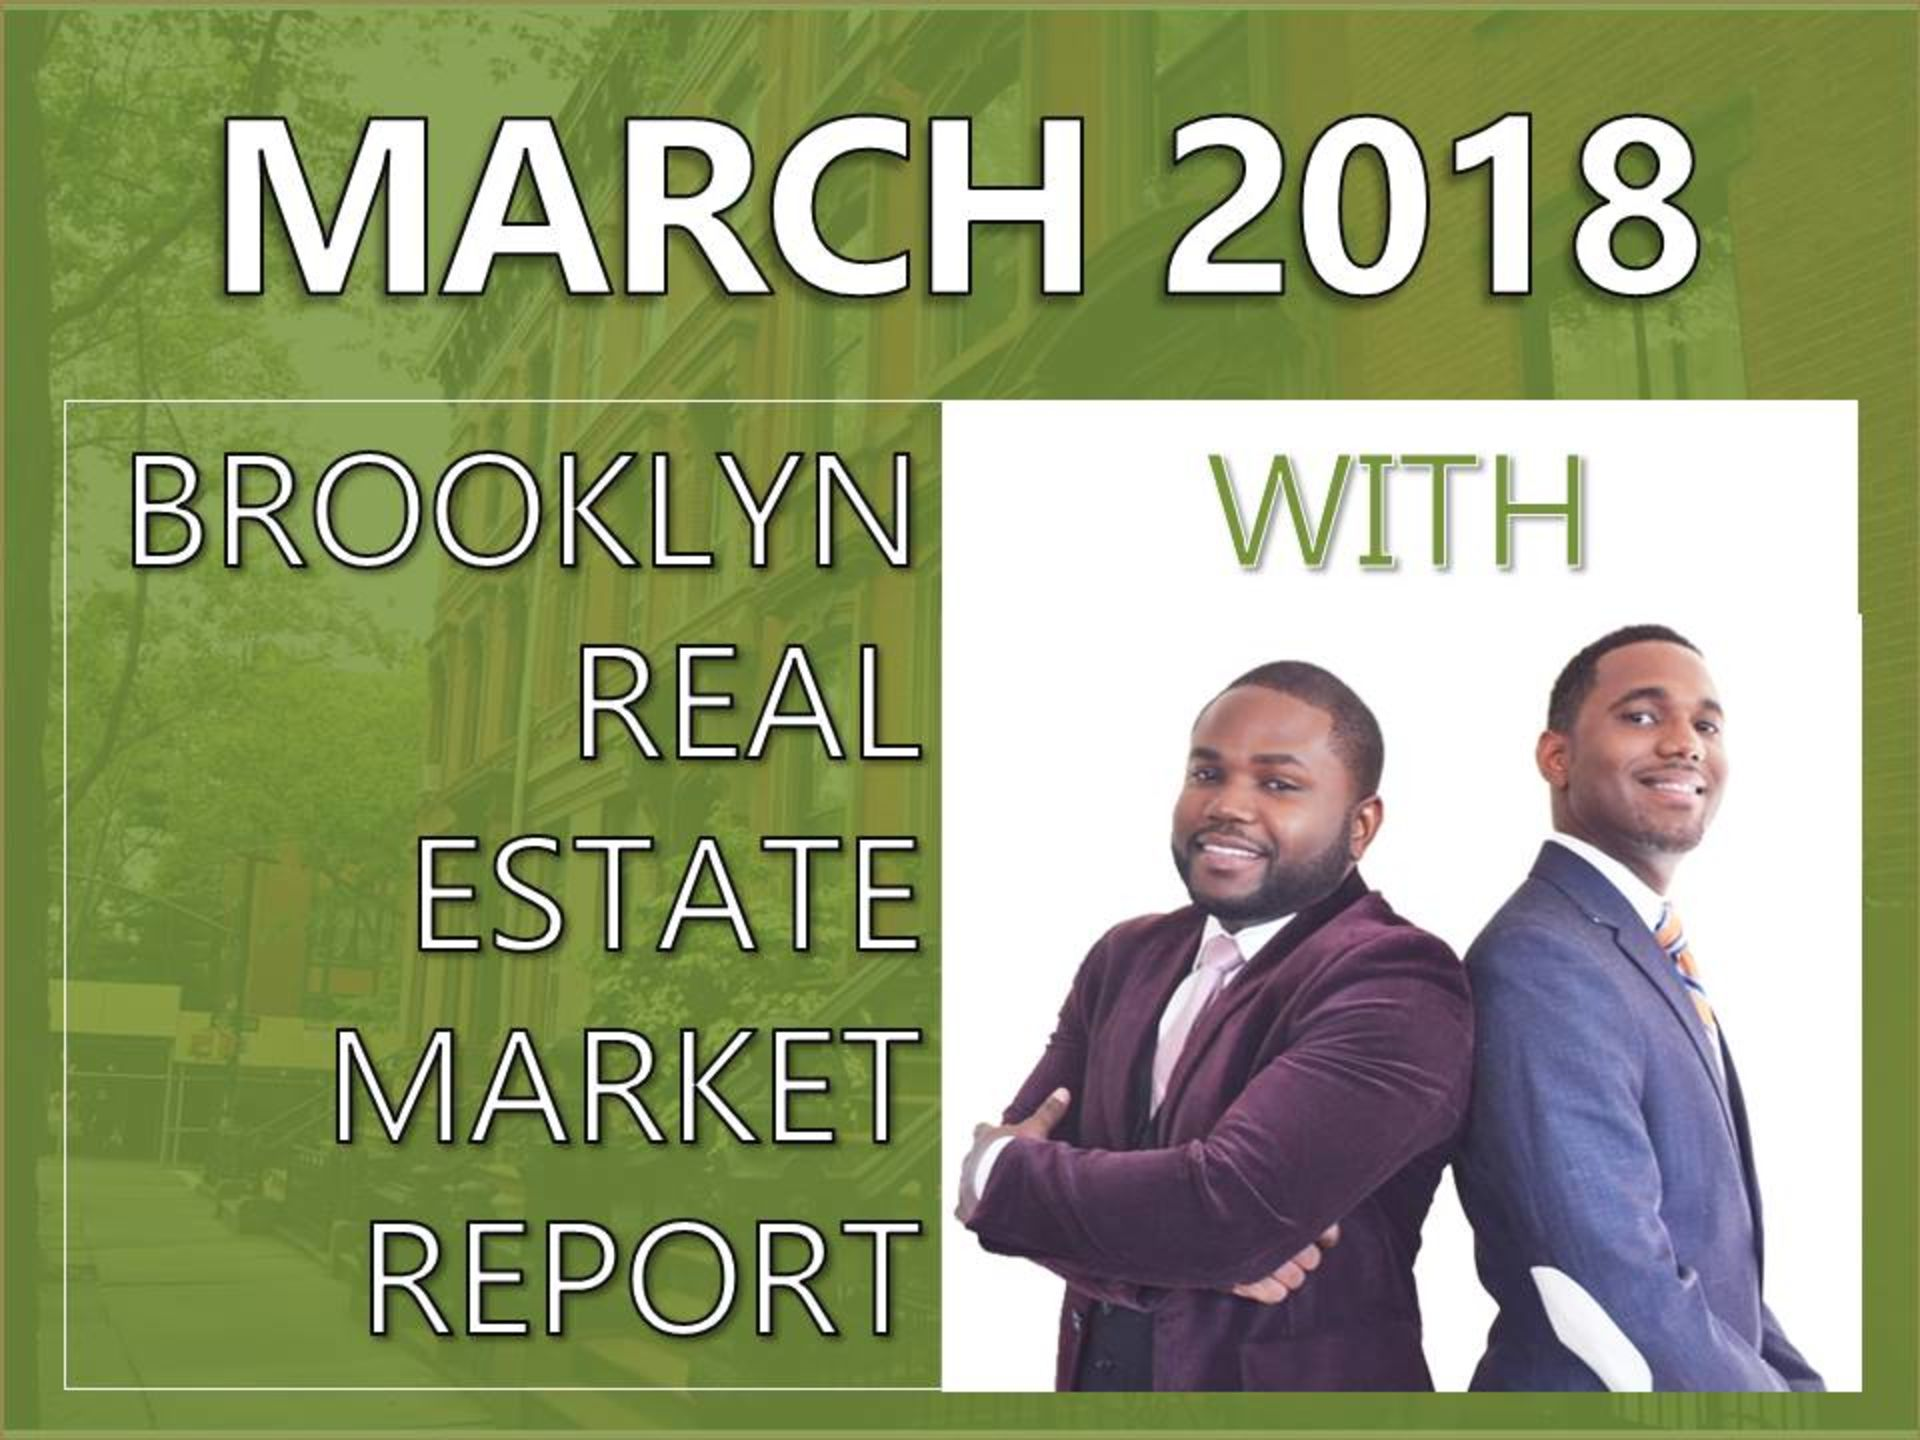 March 2018 Brooklyn Real Estate Market Report